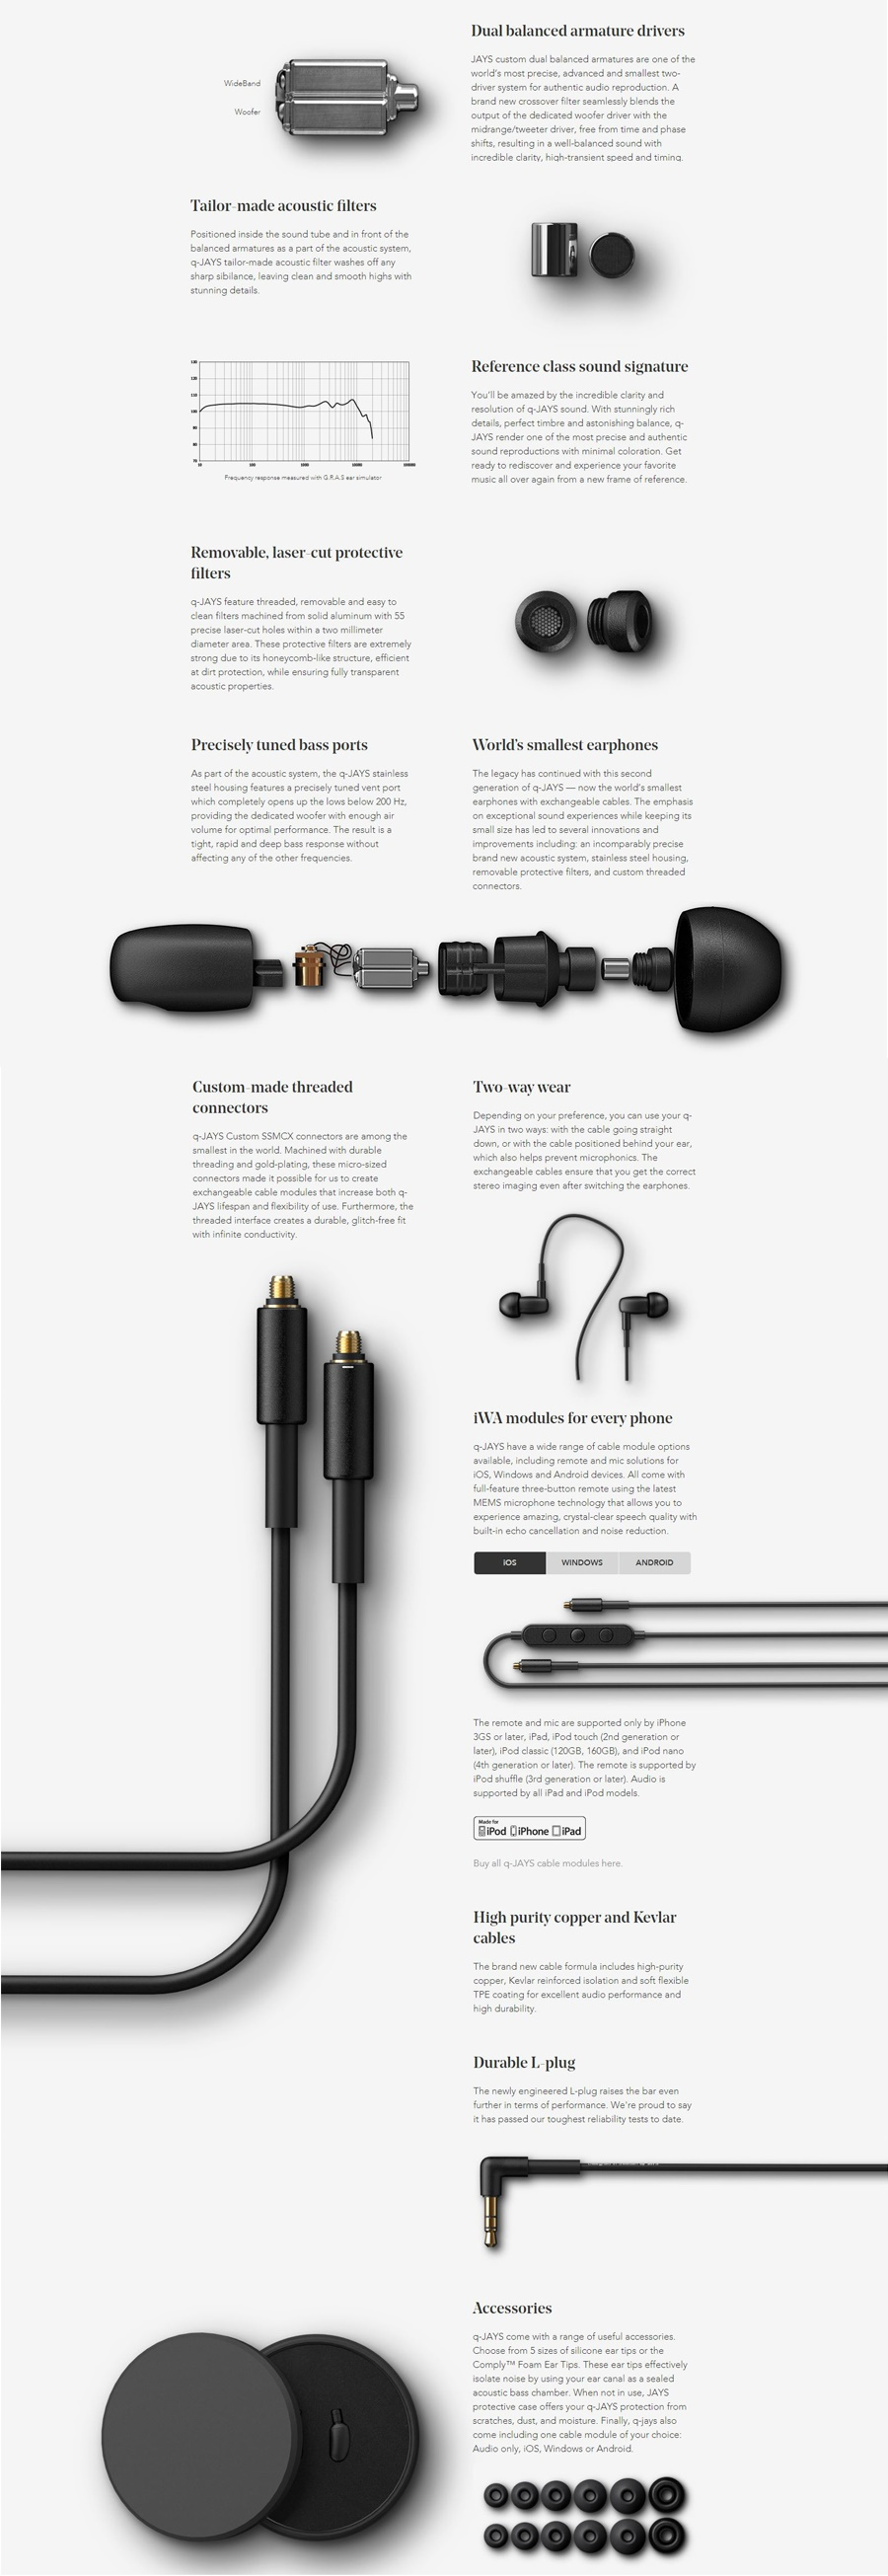 Every Need Want Day A Jays One Black Q Ios Headphone Earphone Local Set With Warranty